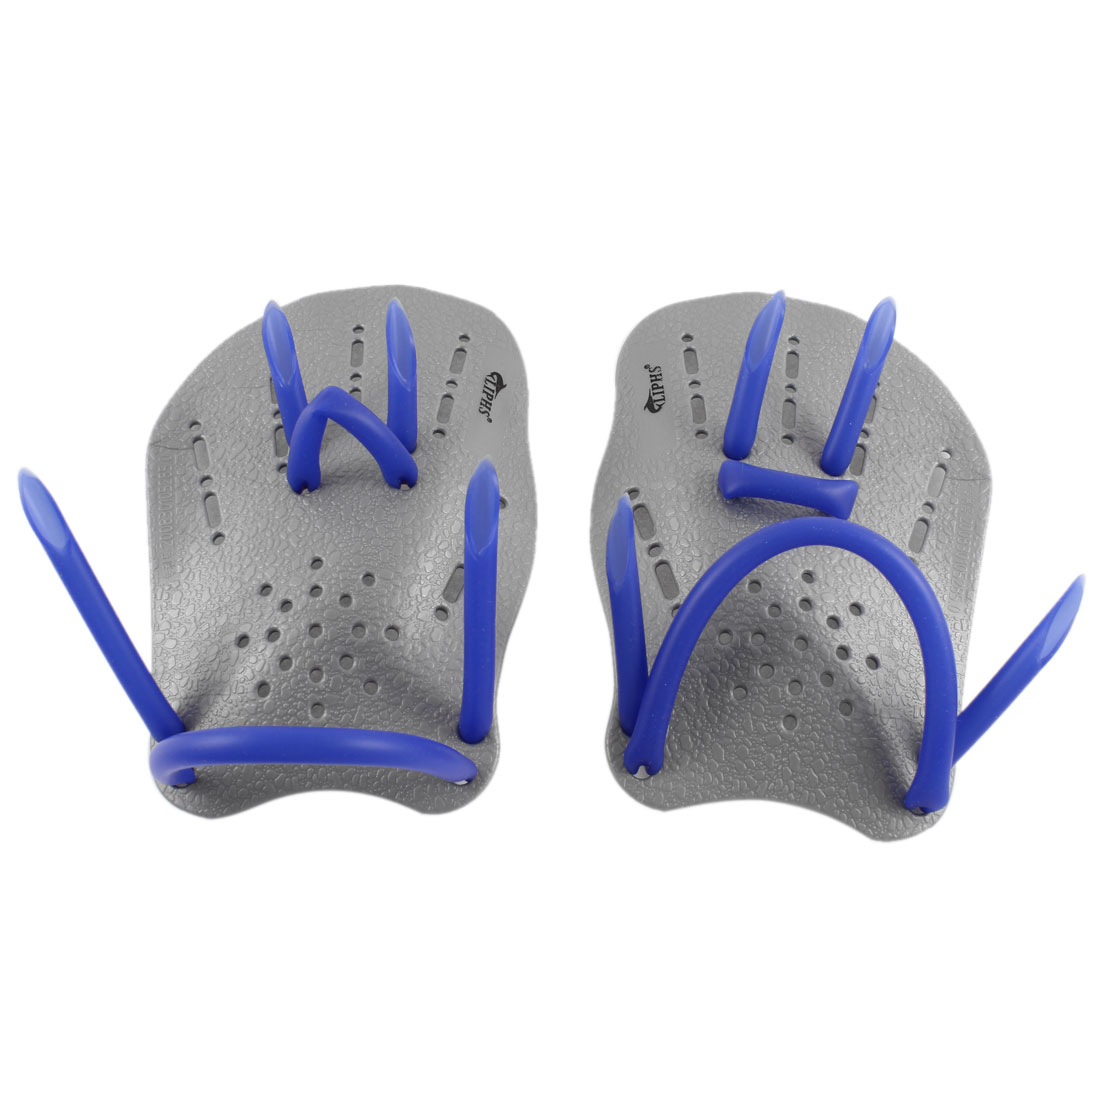 Swimming Training Rubber Webbed Hand Gloves Paddles Gray Pair w Adjustable Strap